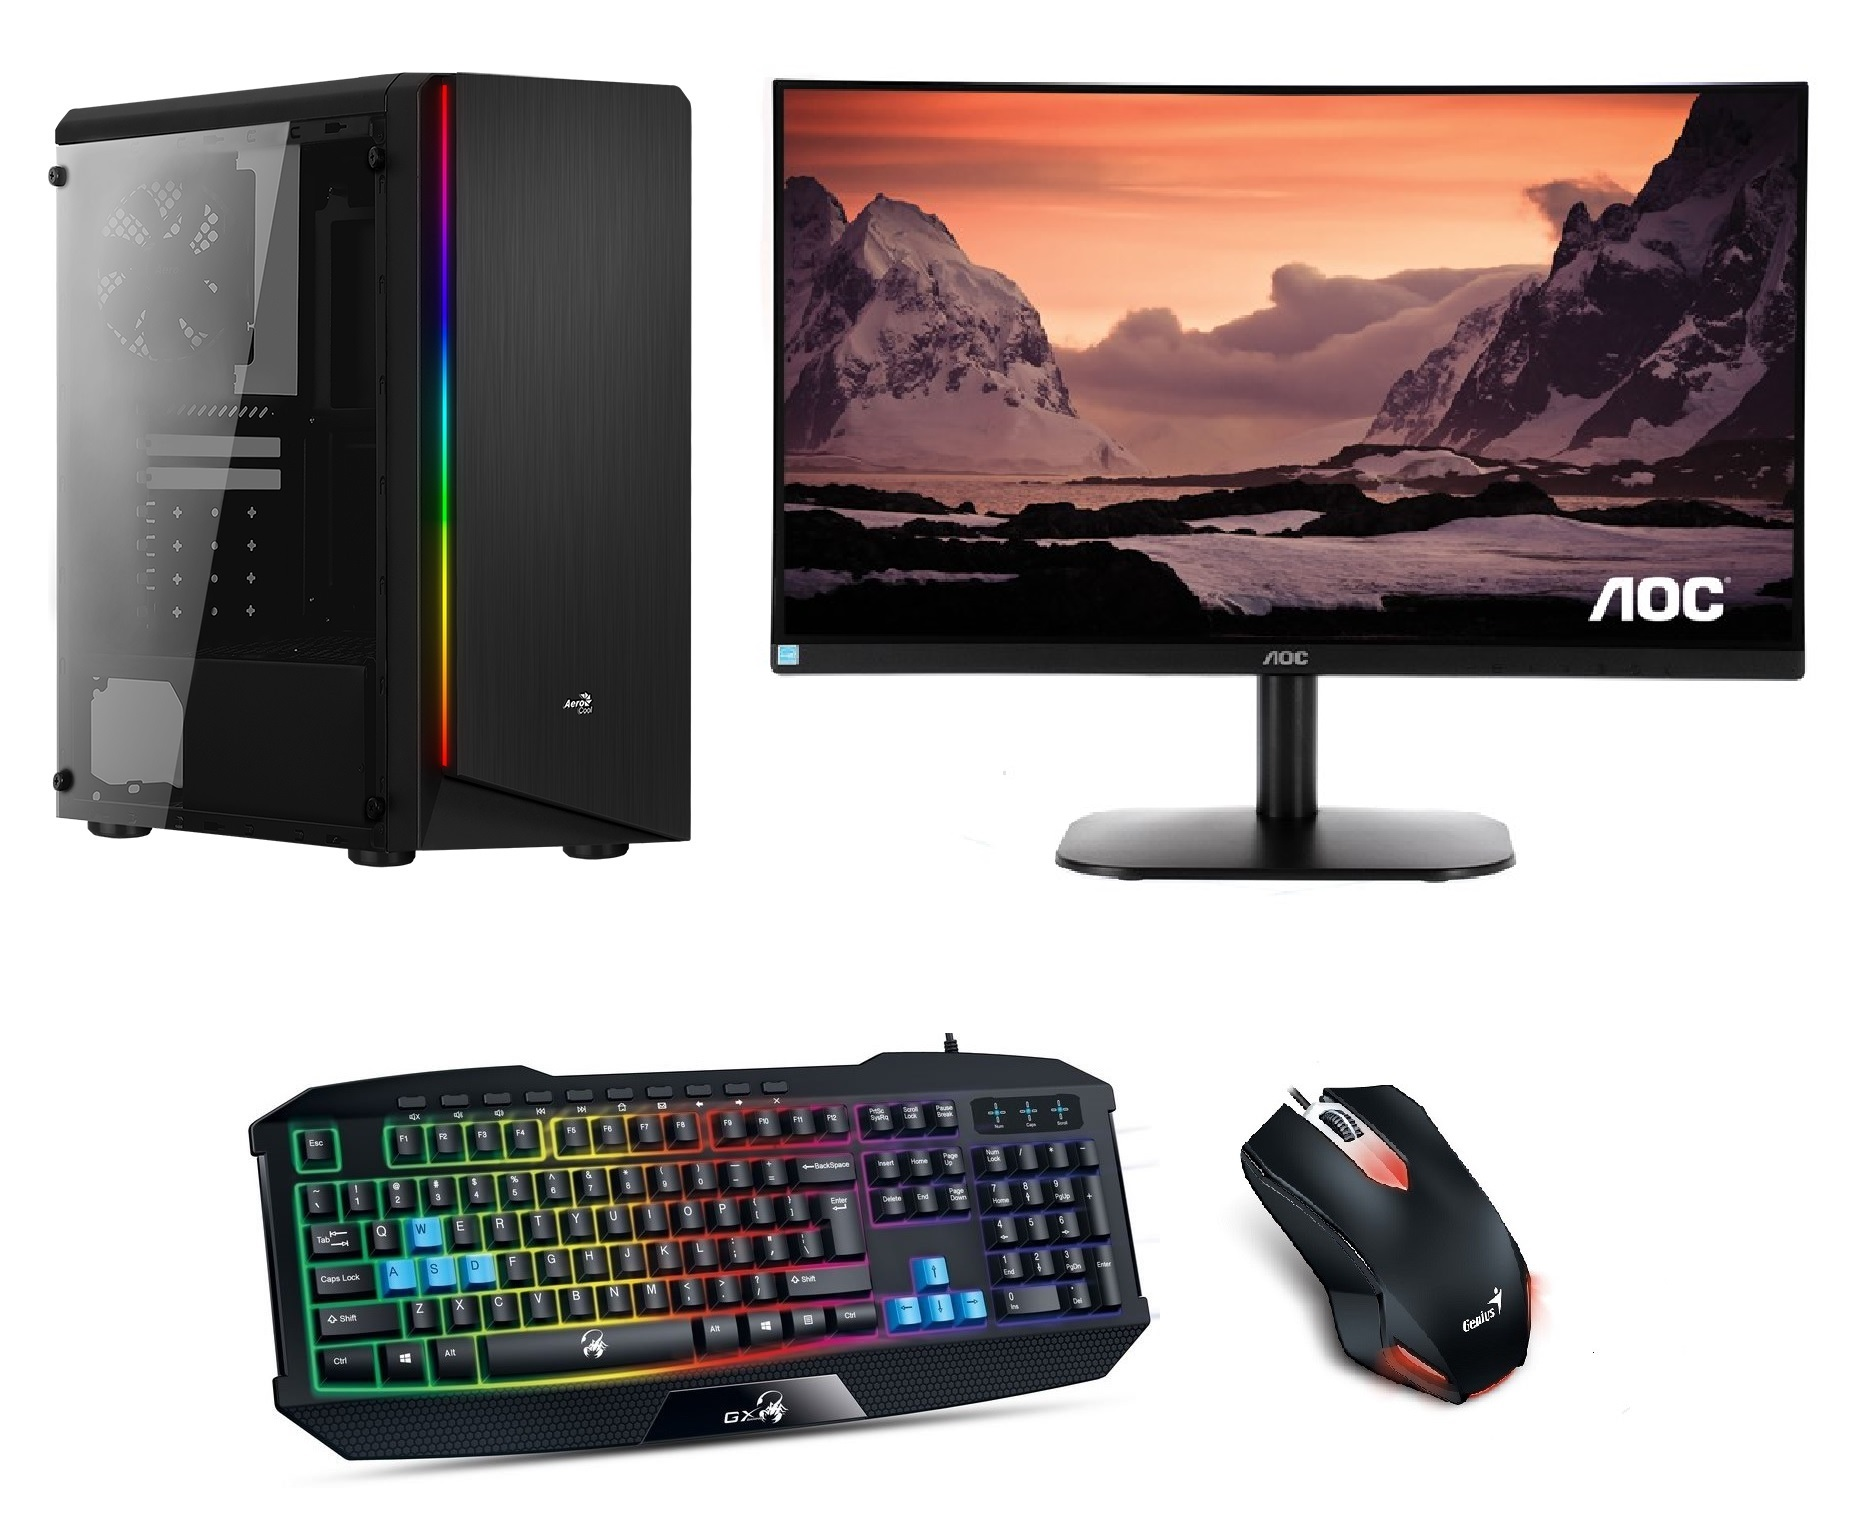 "AMD Ryzen 3 3100 Quad Core,DDR4 RAM 8GB,AMD Radeon RX 550 4GB,SSD 256GB,HDD 1000GB,DVD,24""LCD monitor AOC,Game SET"